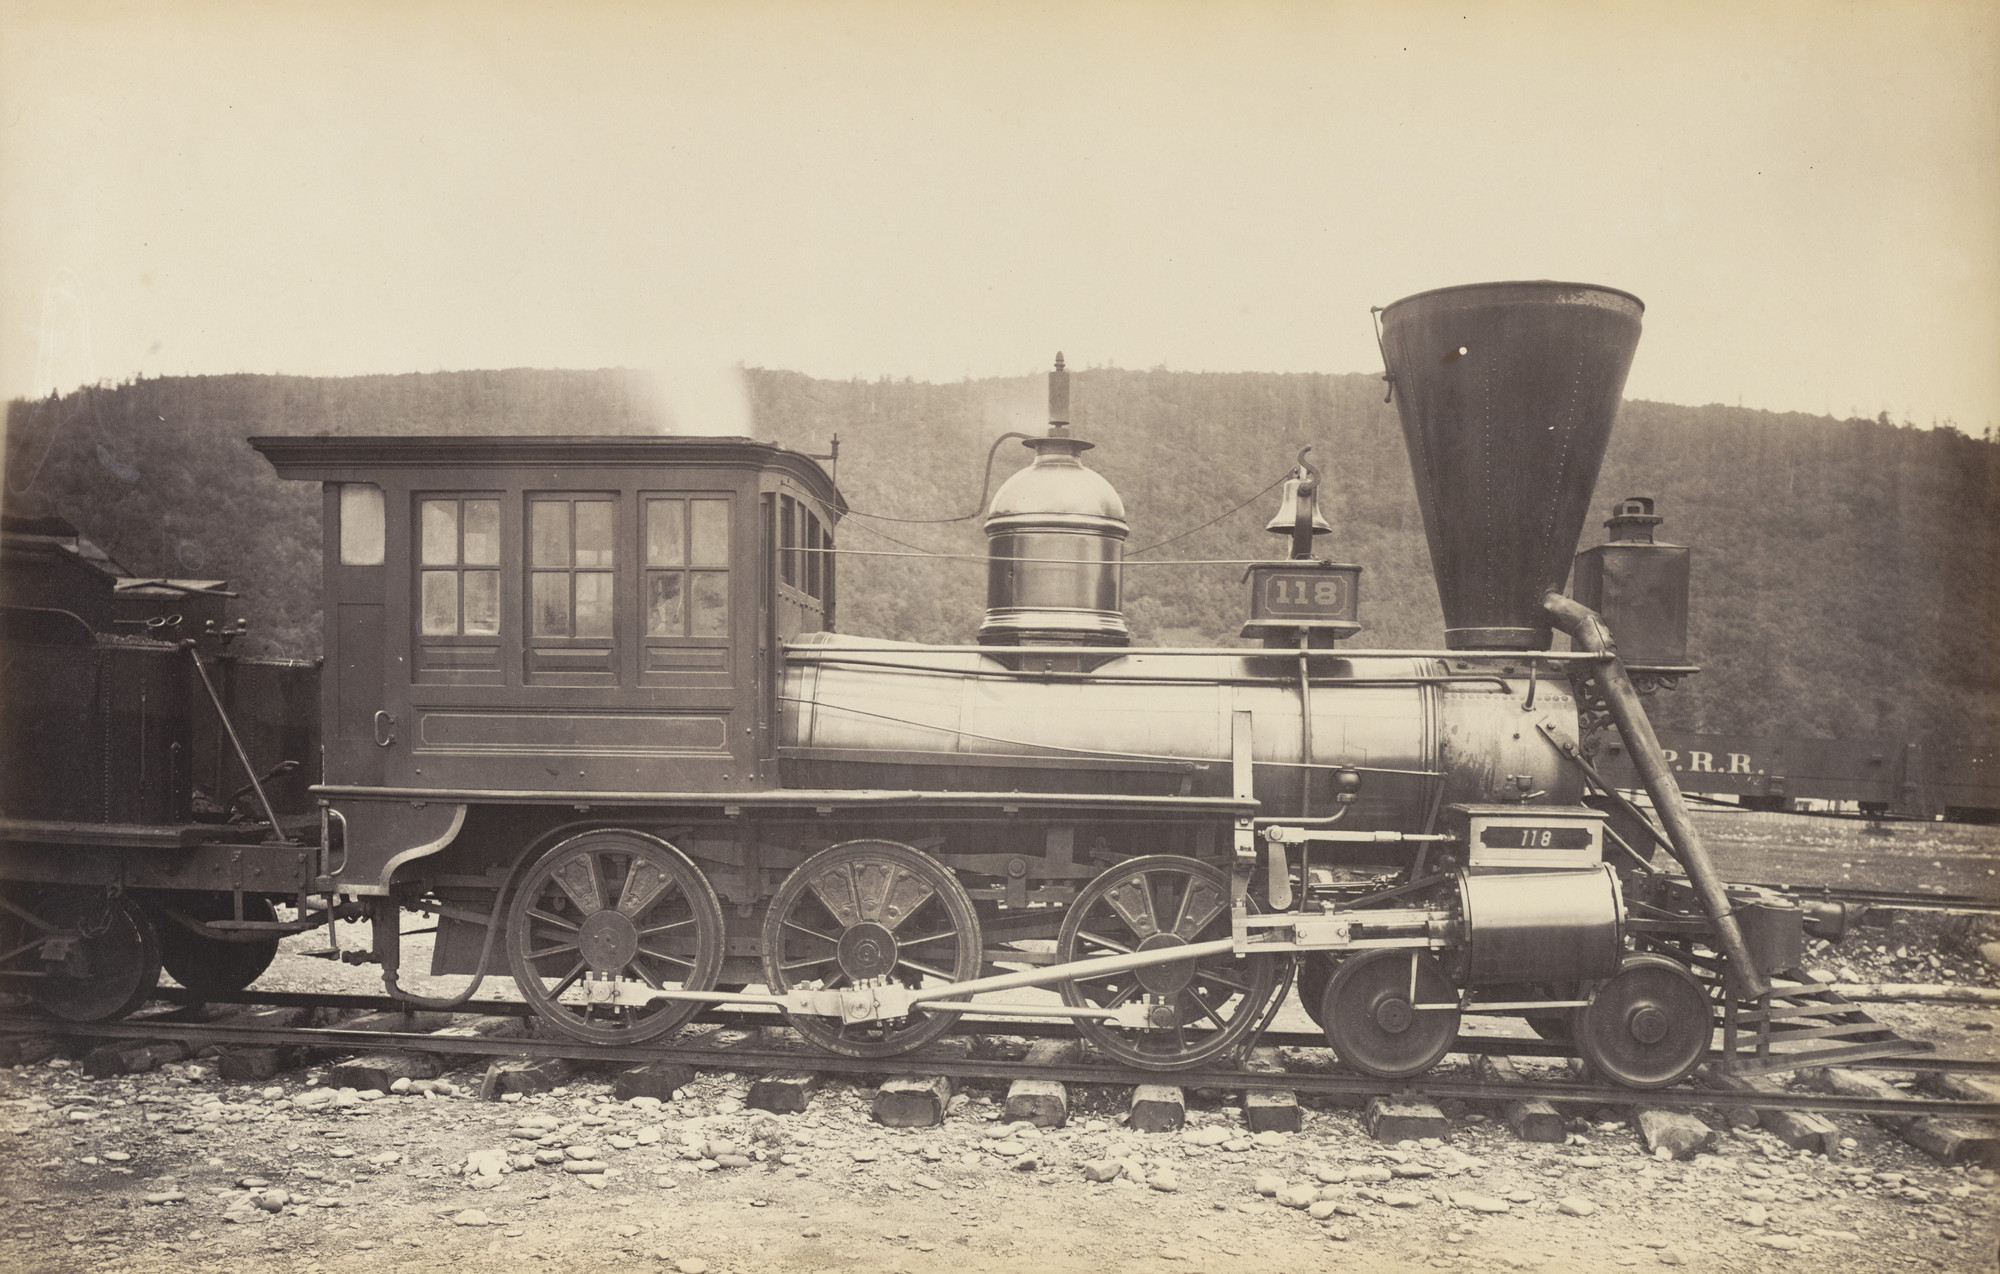 Unknown photographer. Untitled, Pennsylvania Railroad Engine. c. 1868